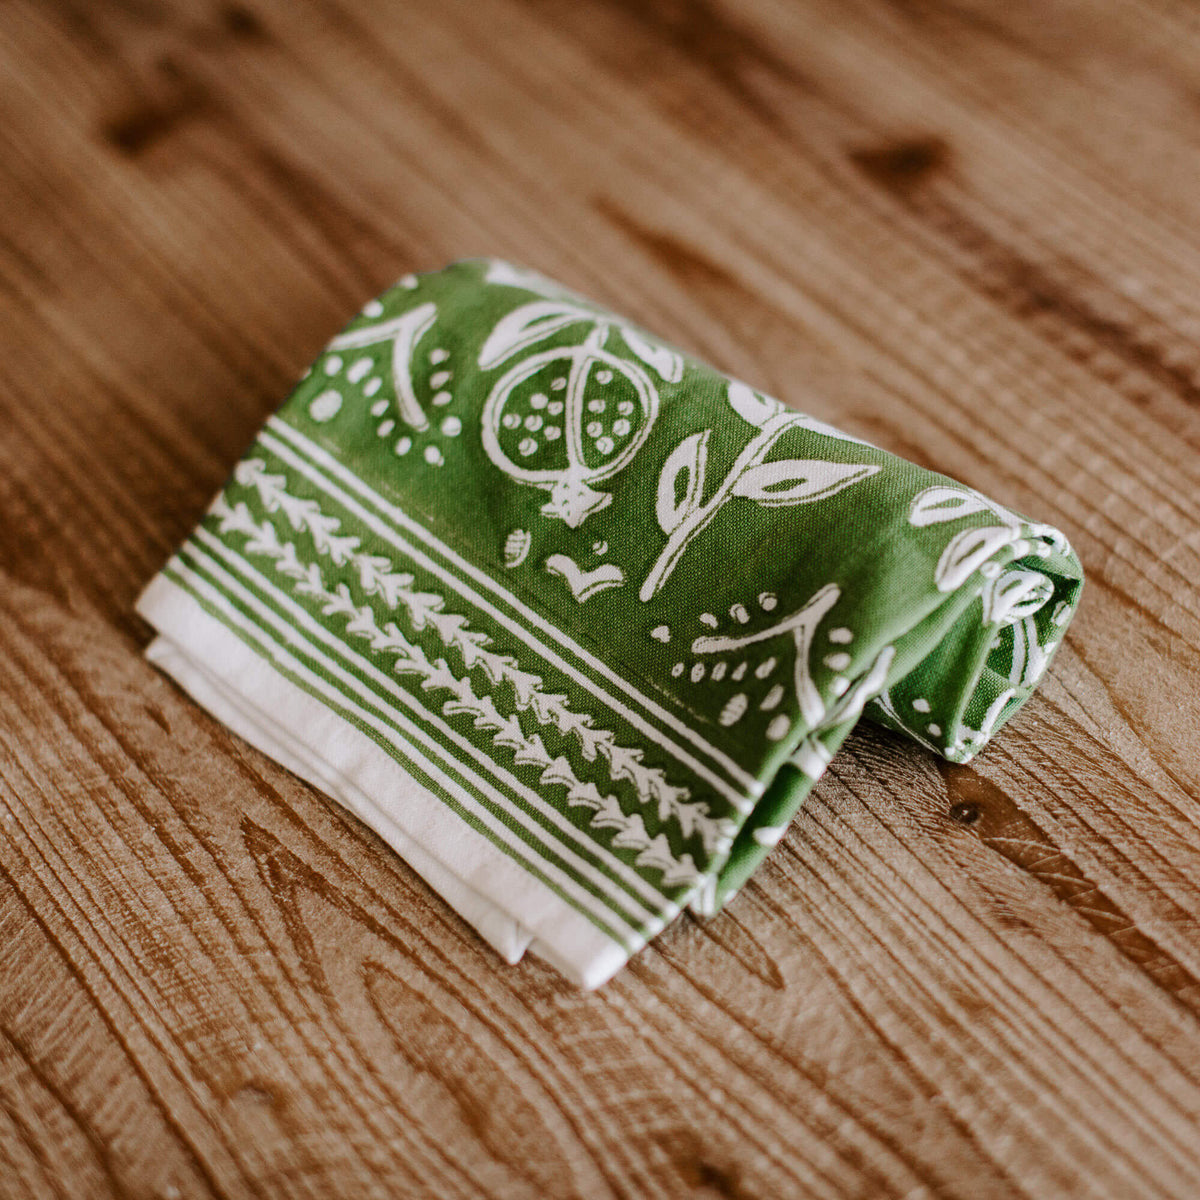 green and white patterned dish towel rolled up on a tabletop